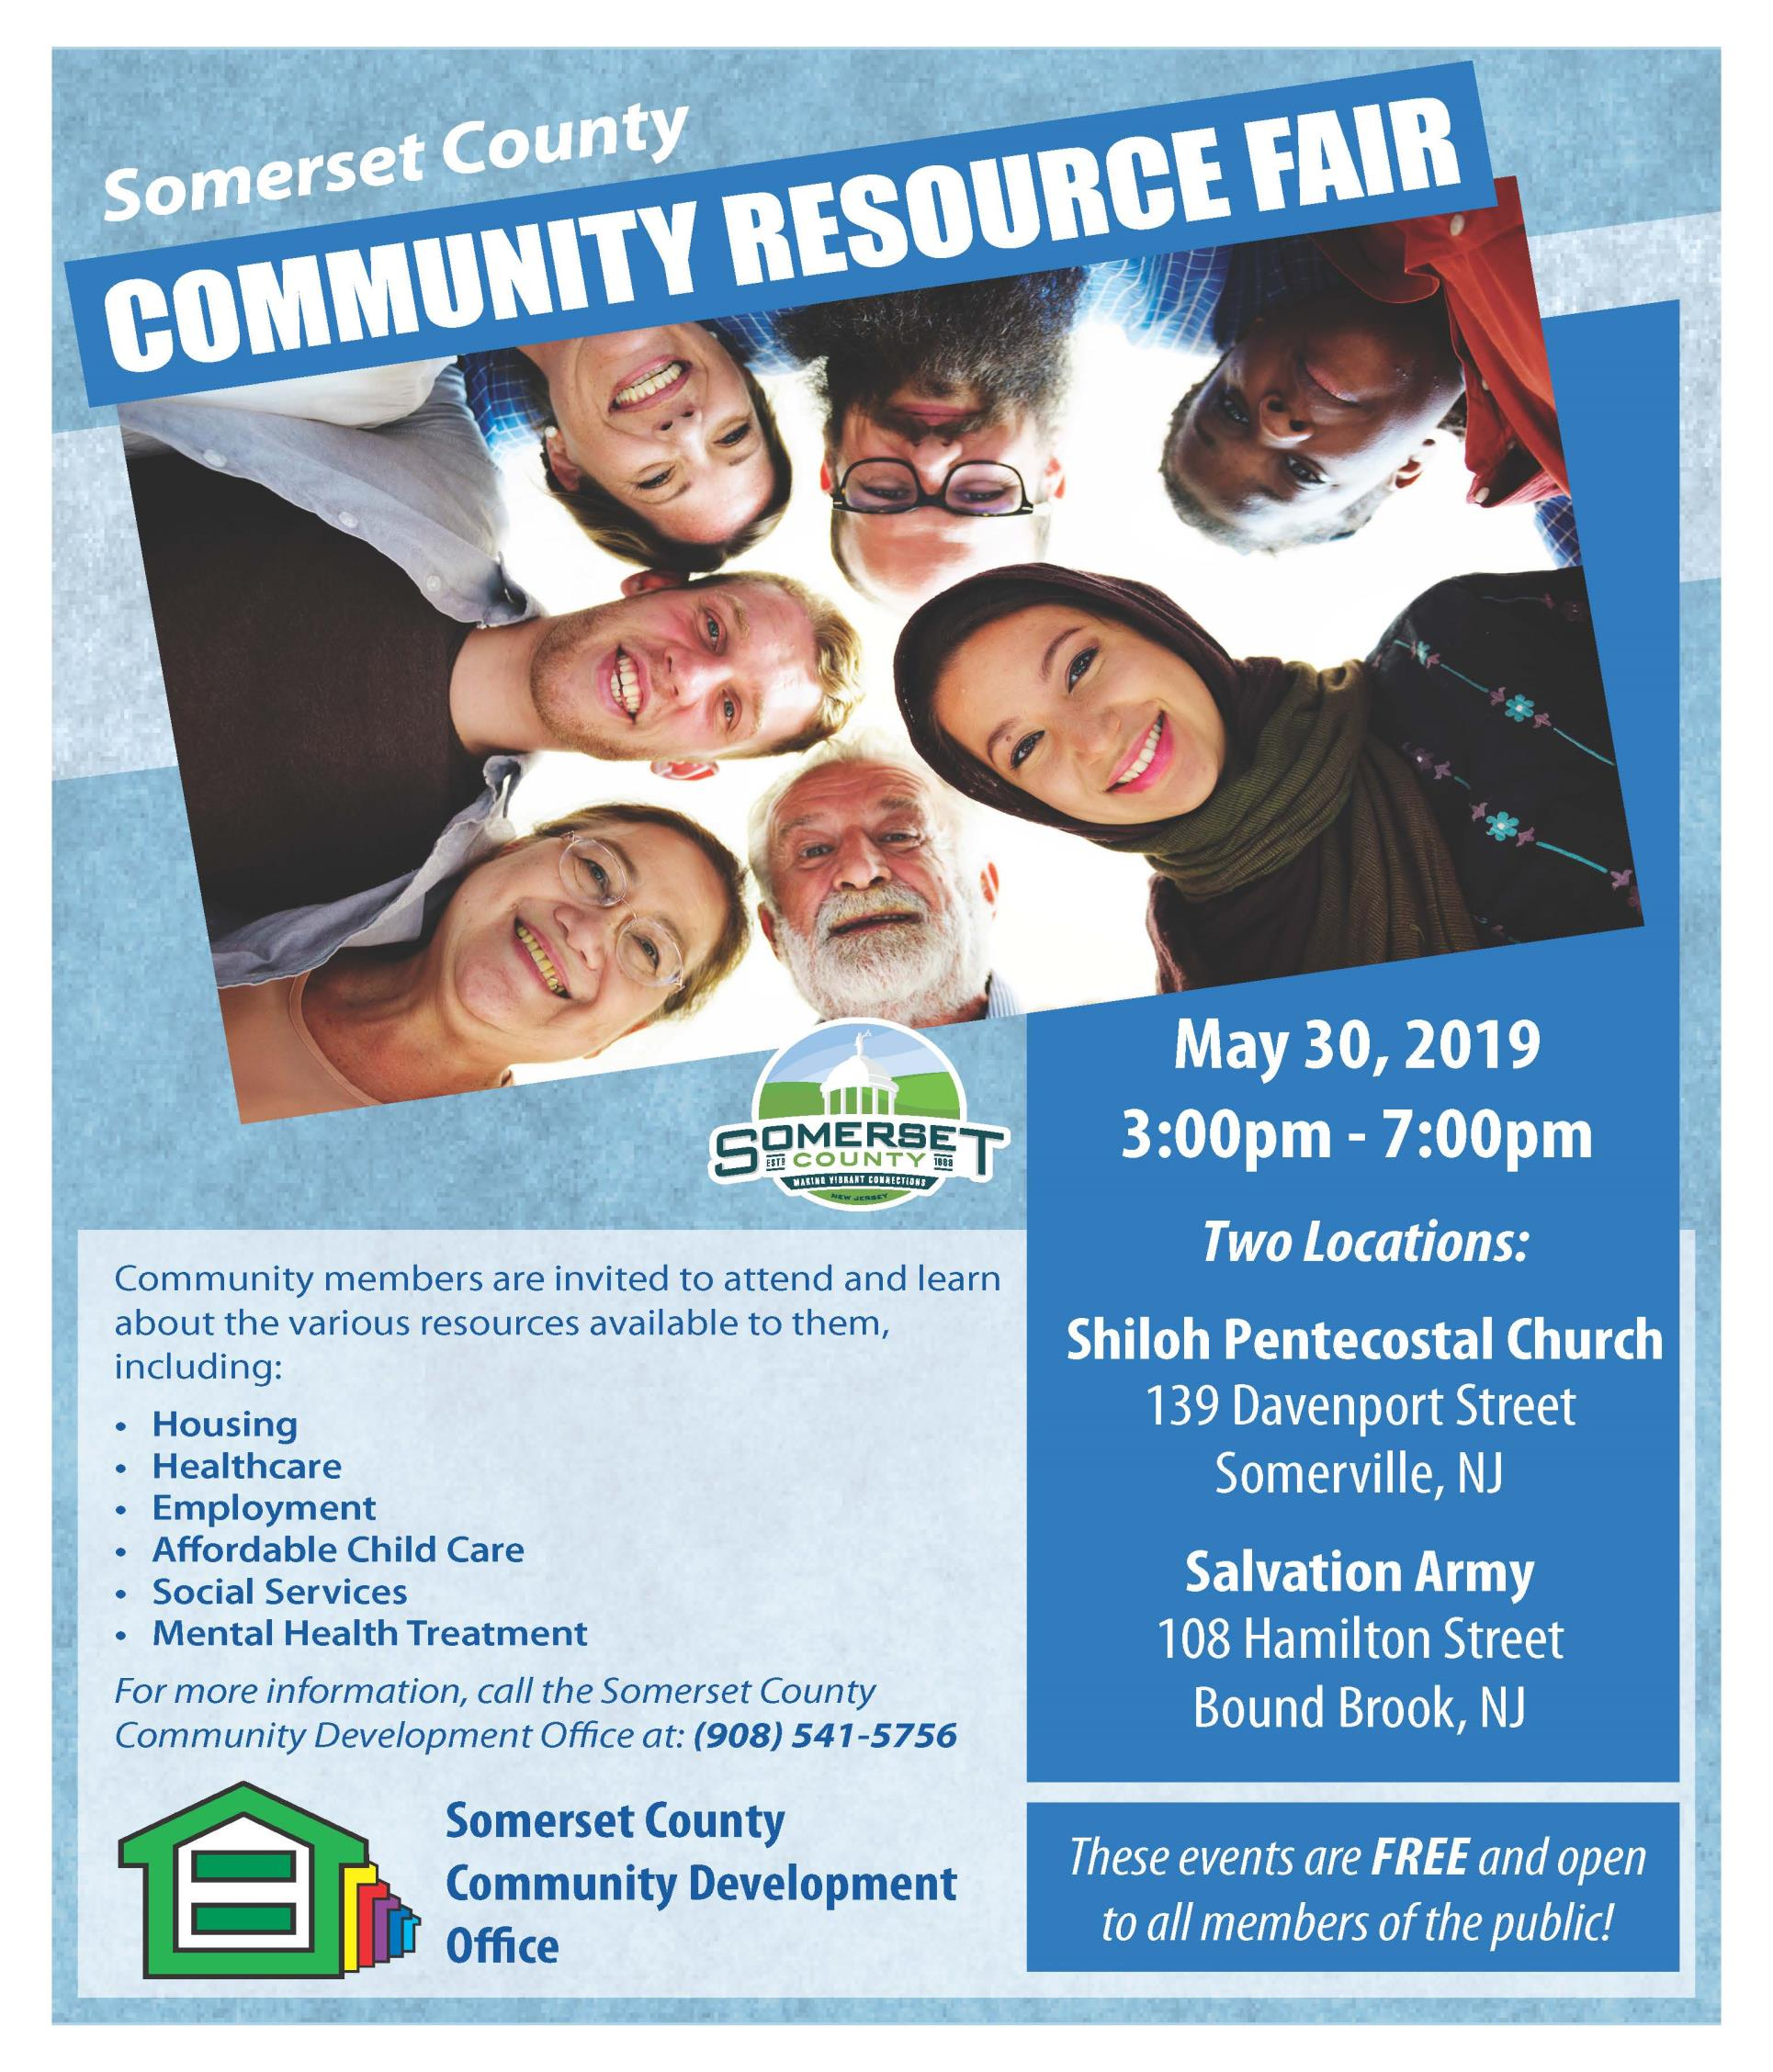 2019 Community Resources Fair Flyer